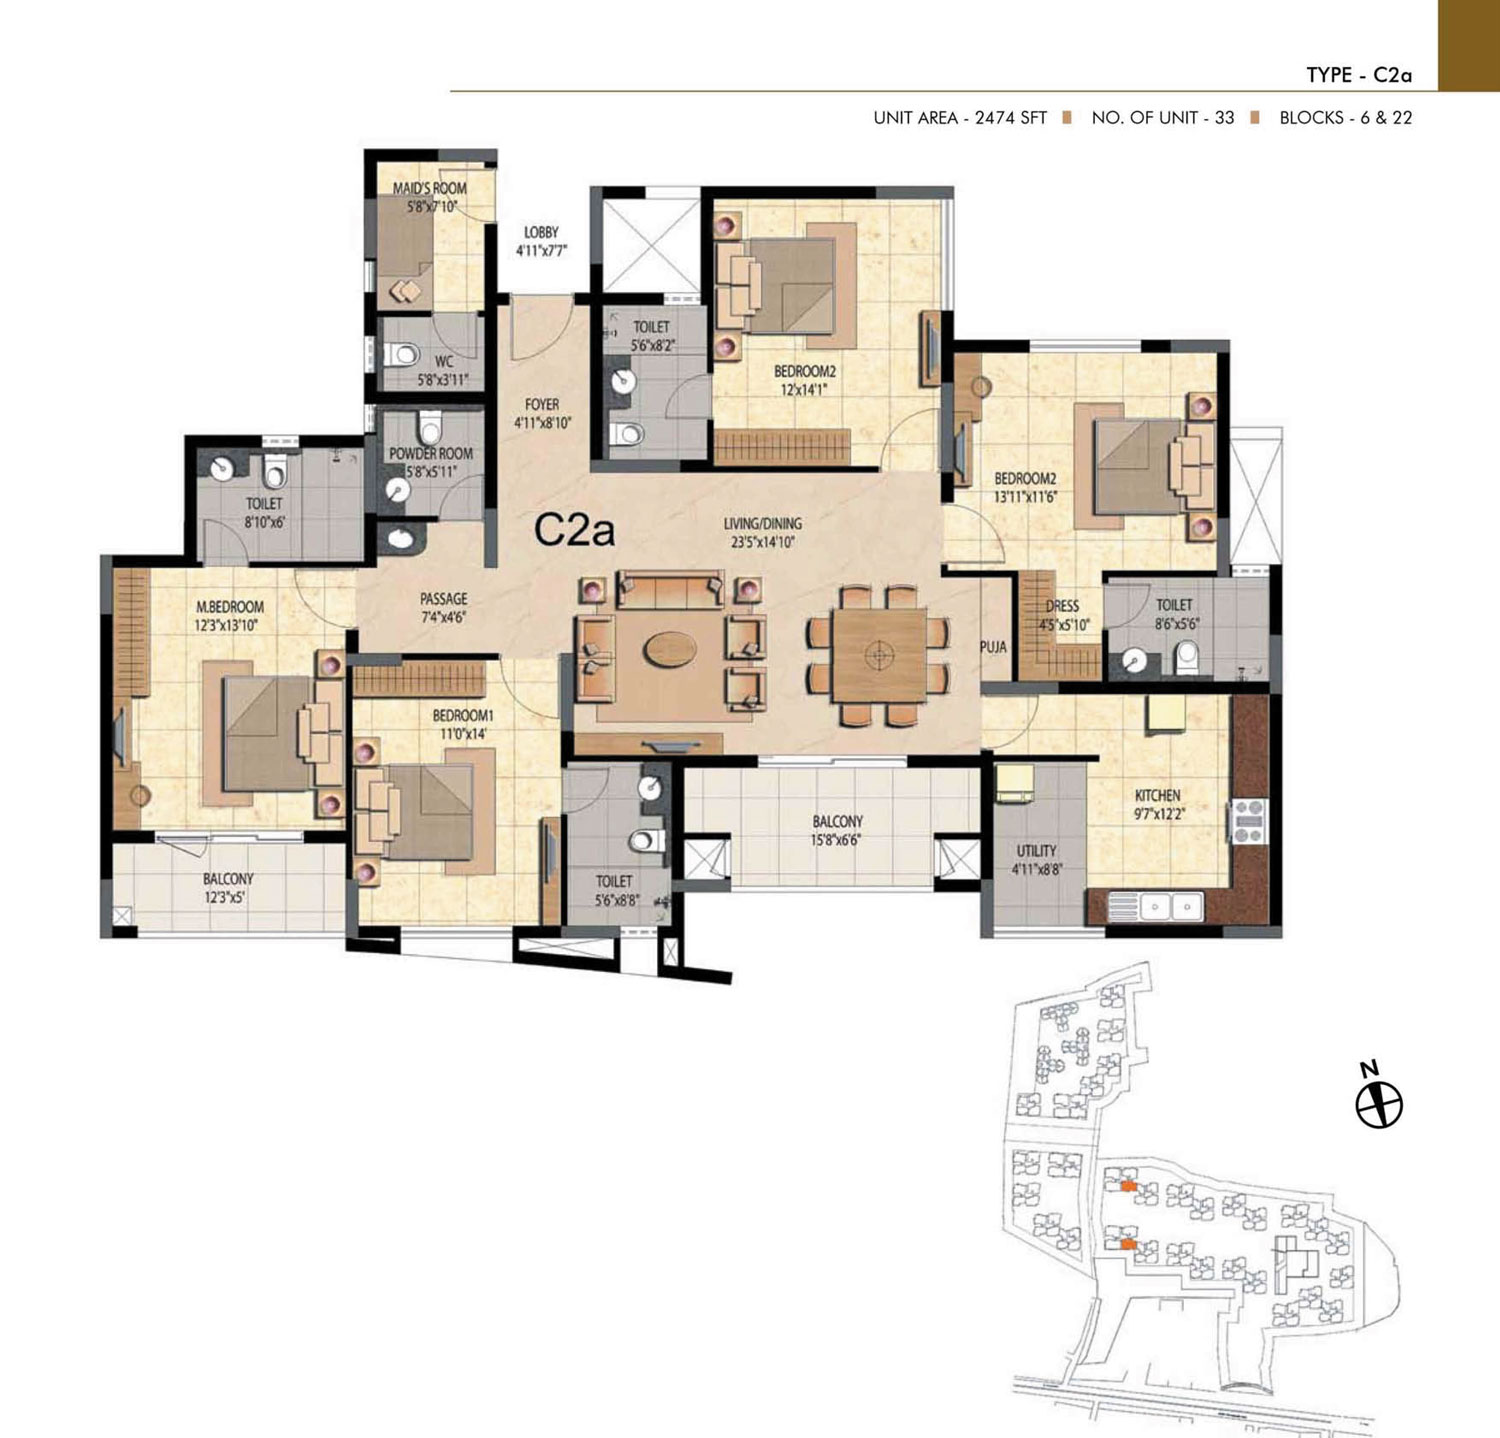 Type C2A - 4 Bed - 2474 Sq Ft